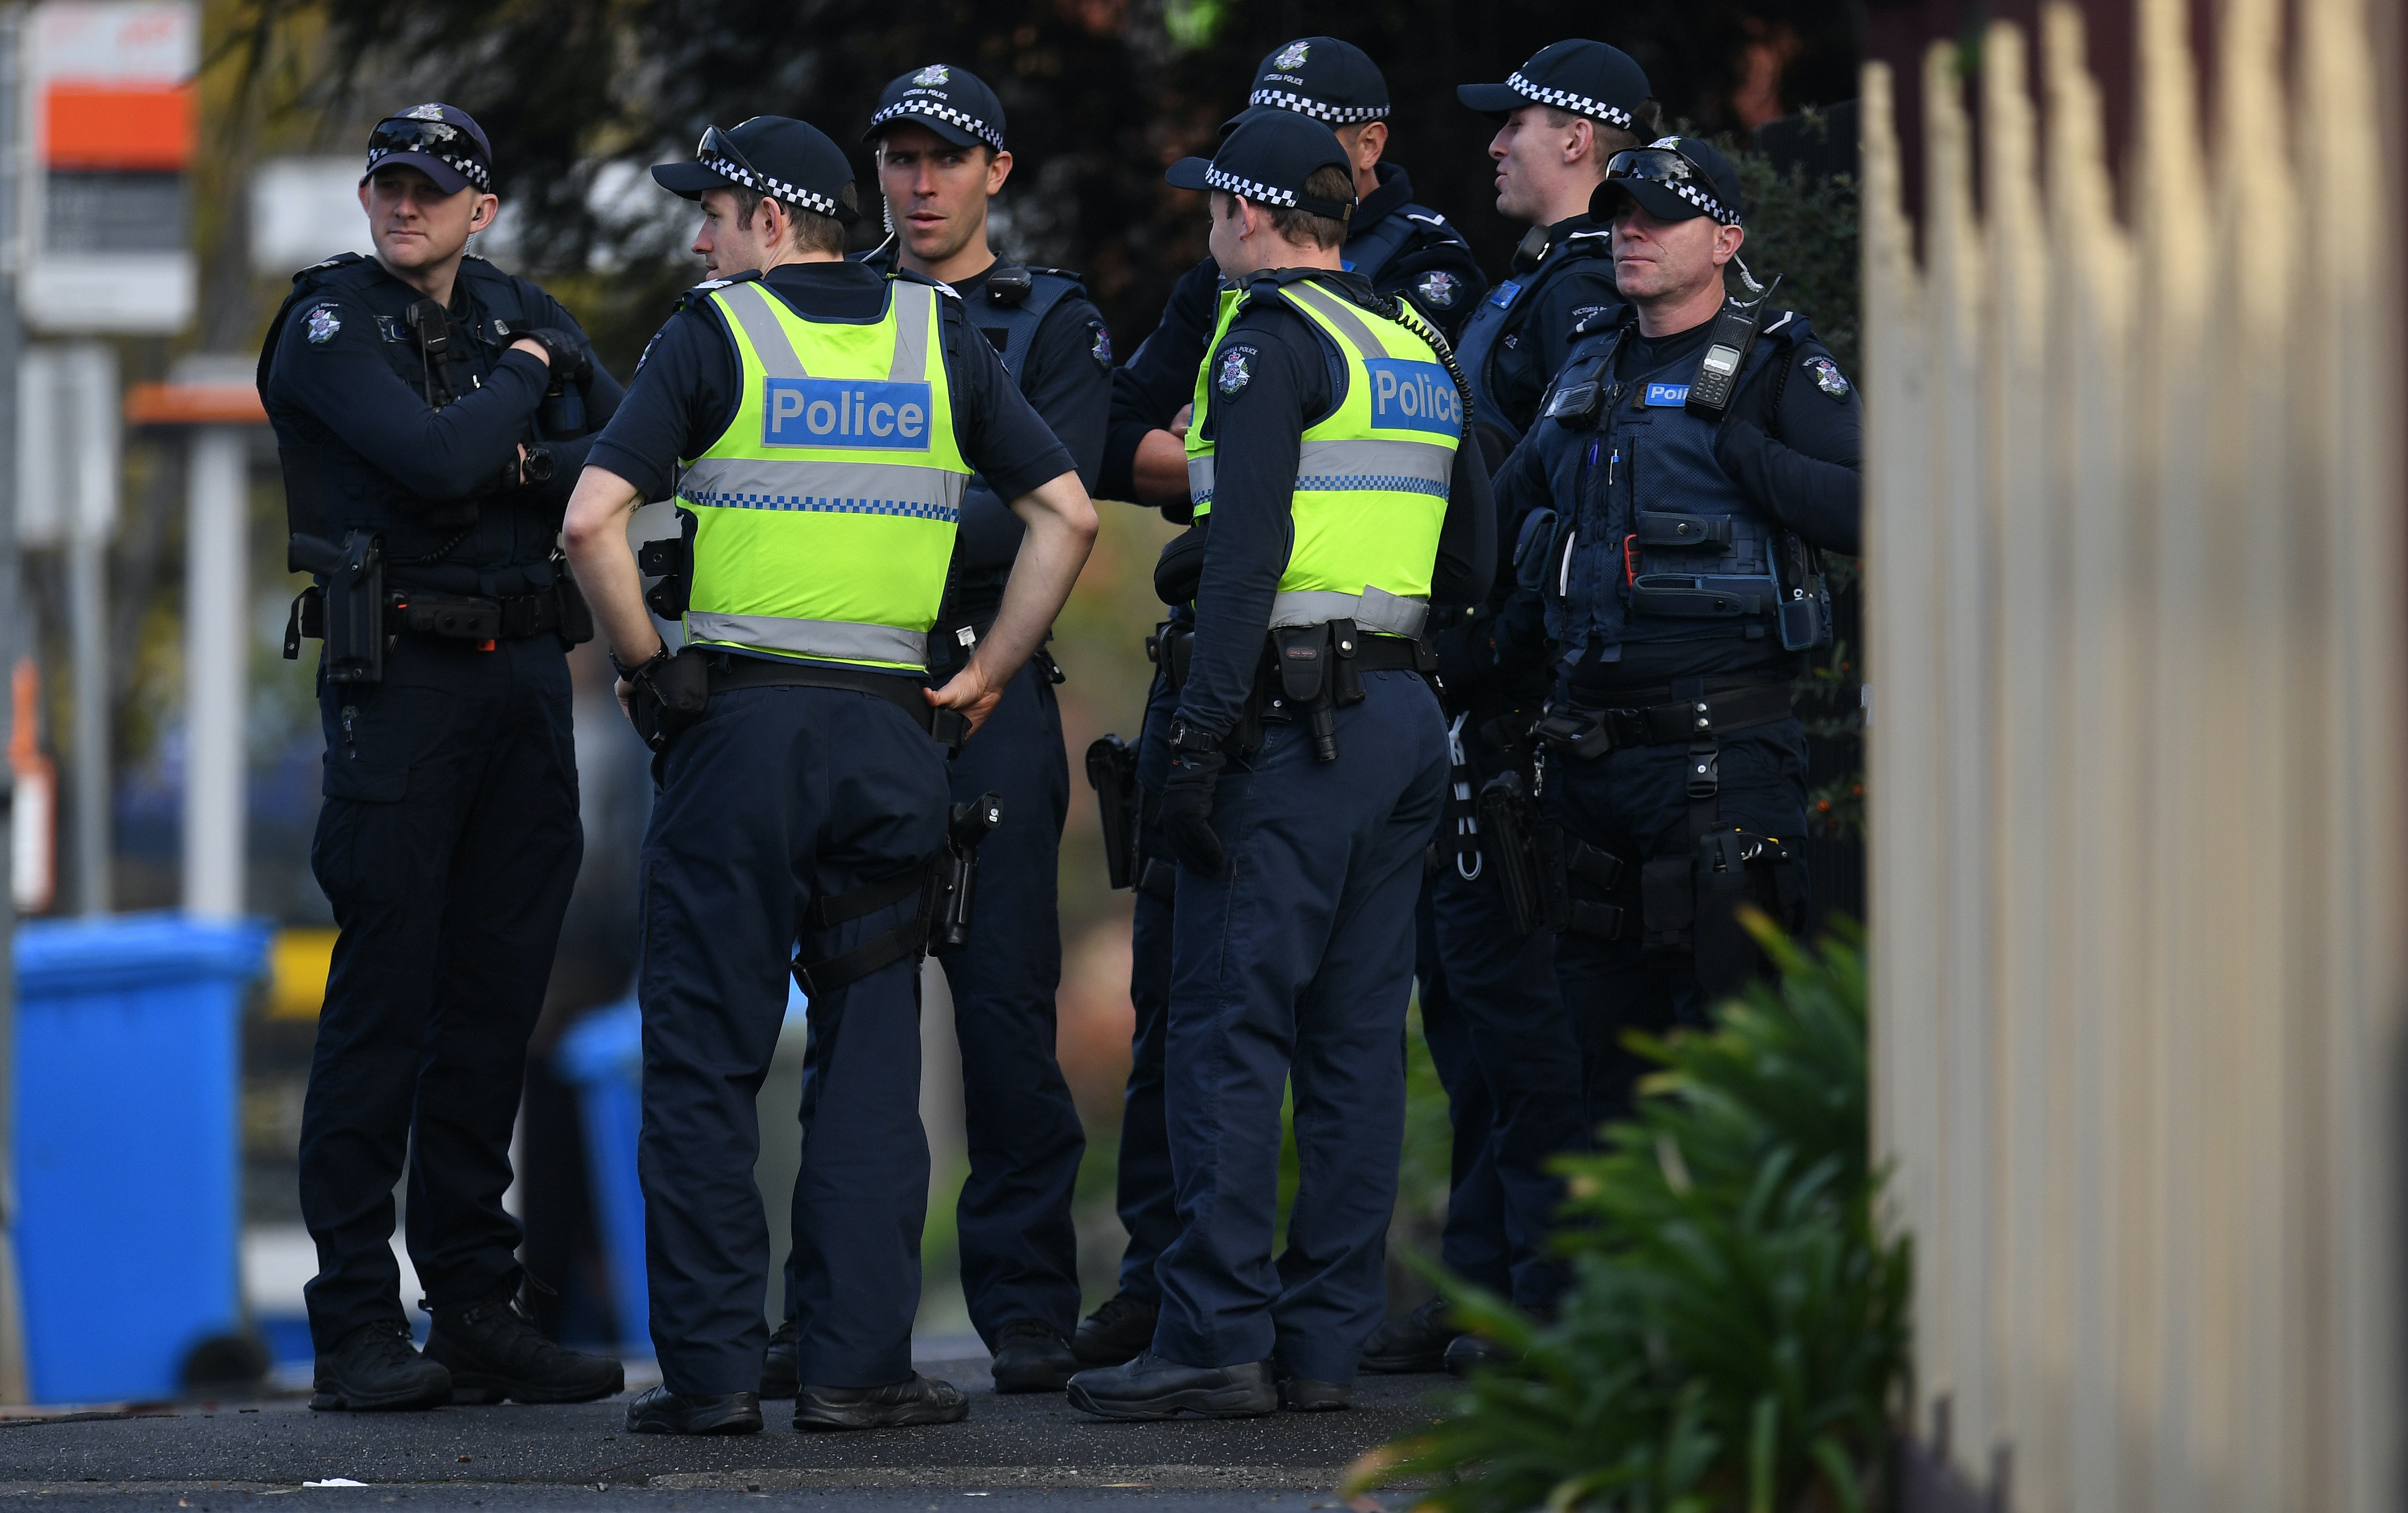 All Together Now Lets Fight Terrorism >> Australian Authorities Are Doing All They Can To Combat Terrorism